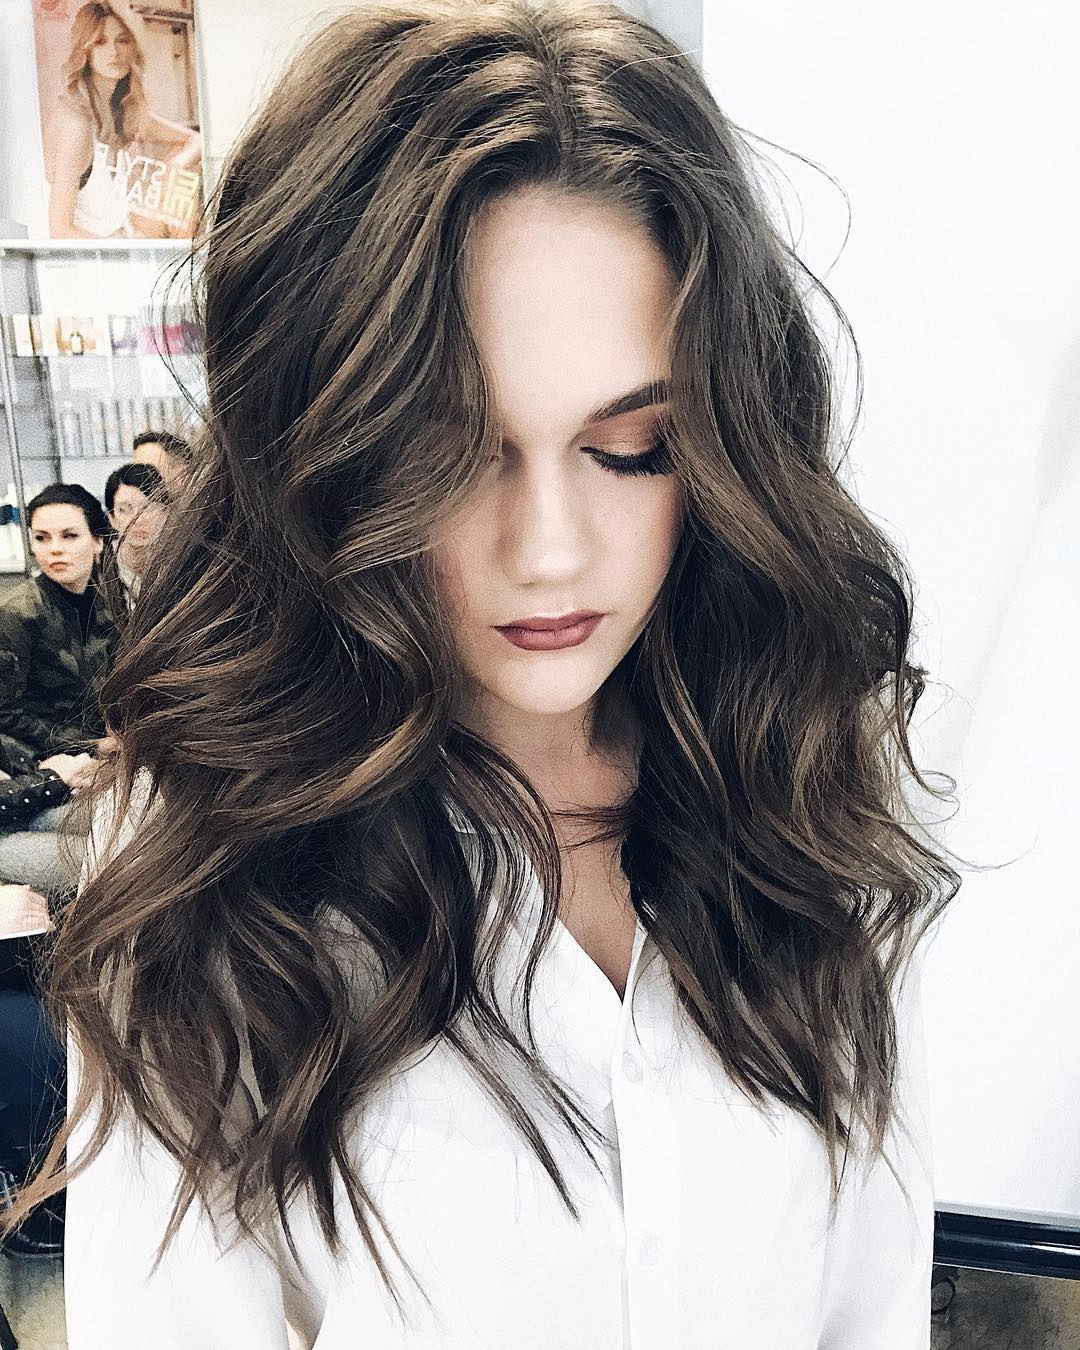 10 Gorgeous Long Wavy Perm Hairstyles, Long Hair Styles 2019 Inside Recent Long Tousled Voluminous Hairstyles (View 2 of 20)